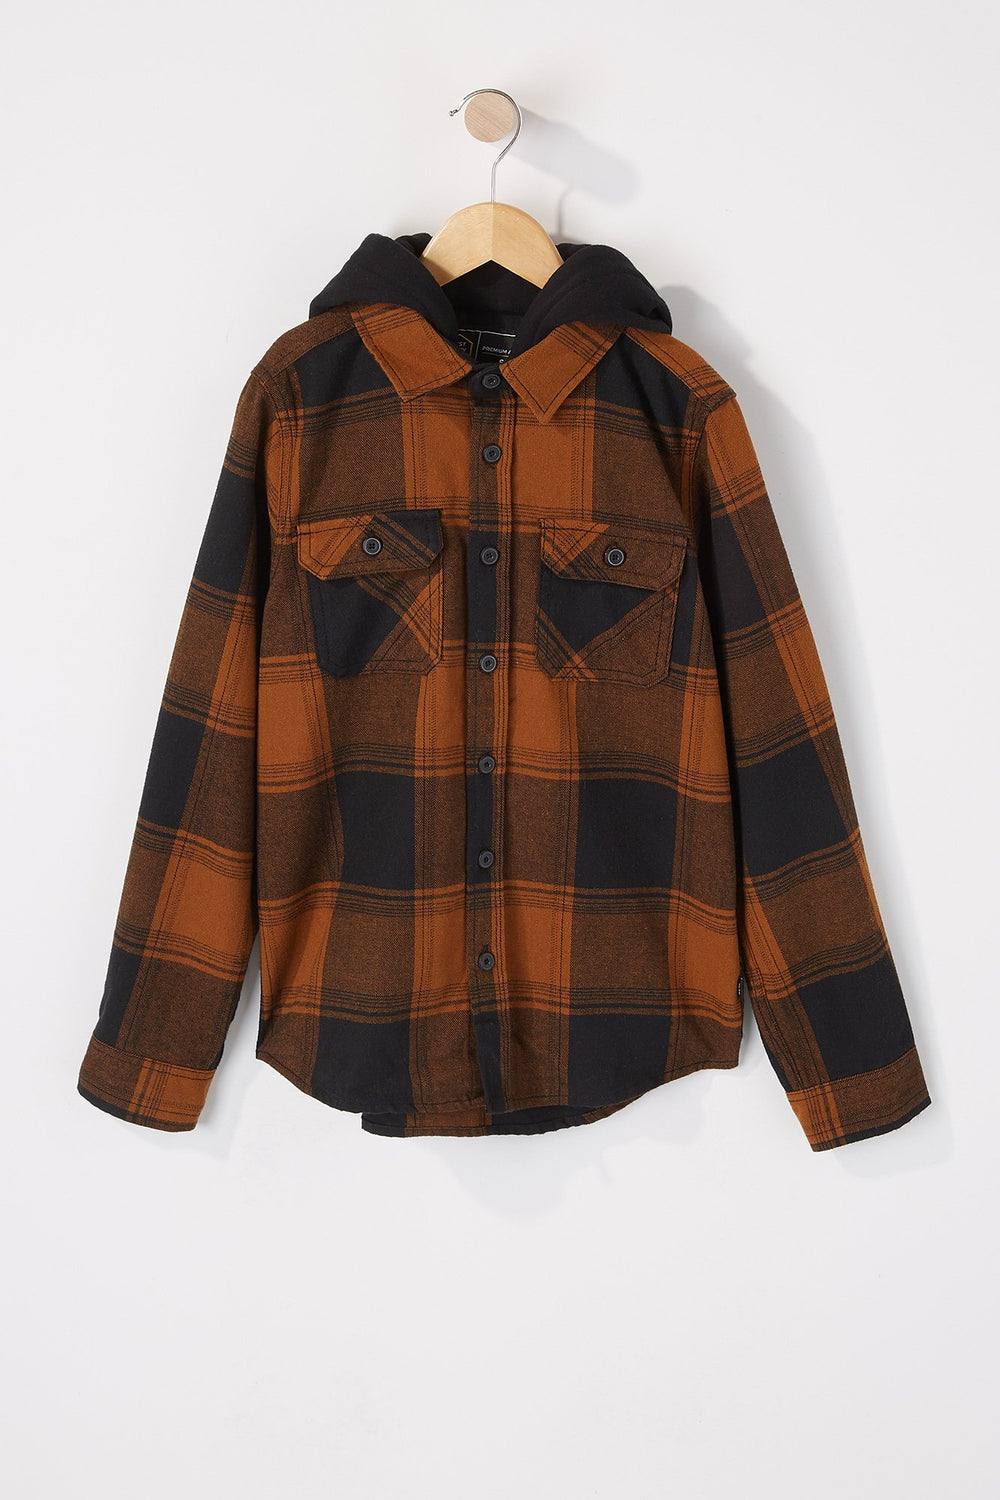 West49 Boys Hooded Flannel Plaid Button-Up Shirt Mustard